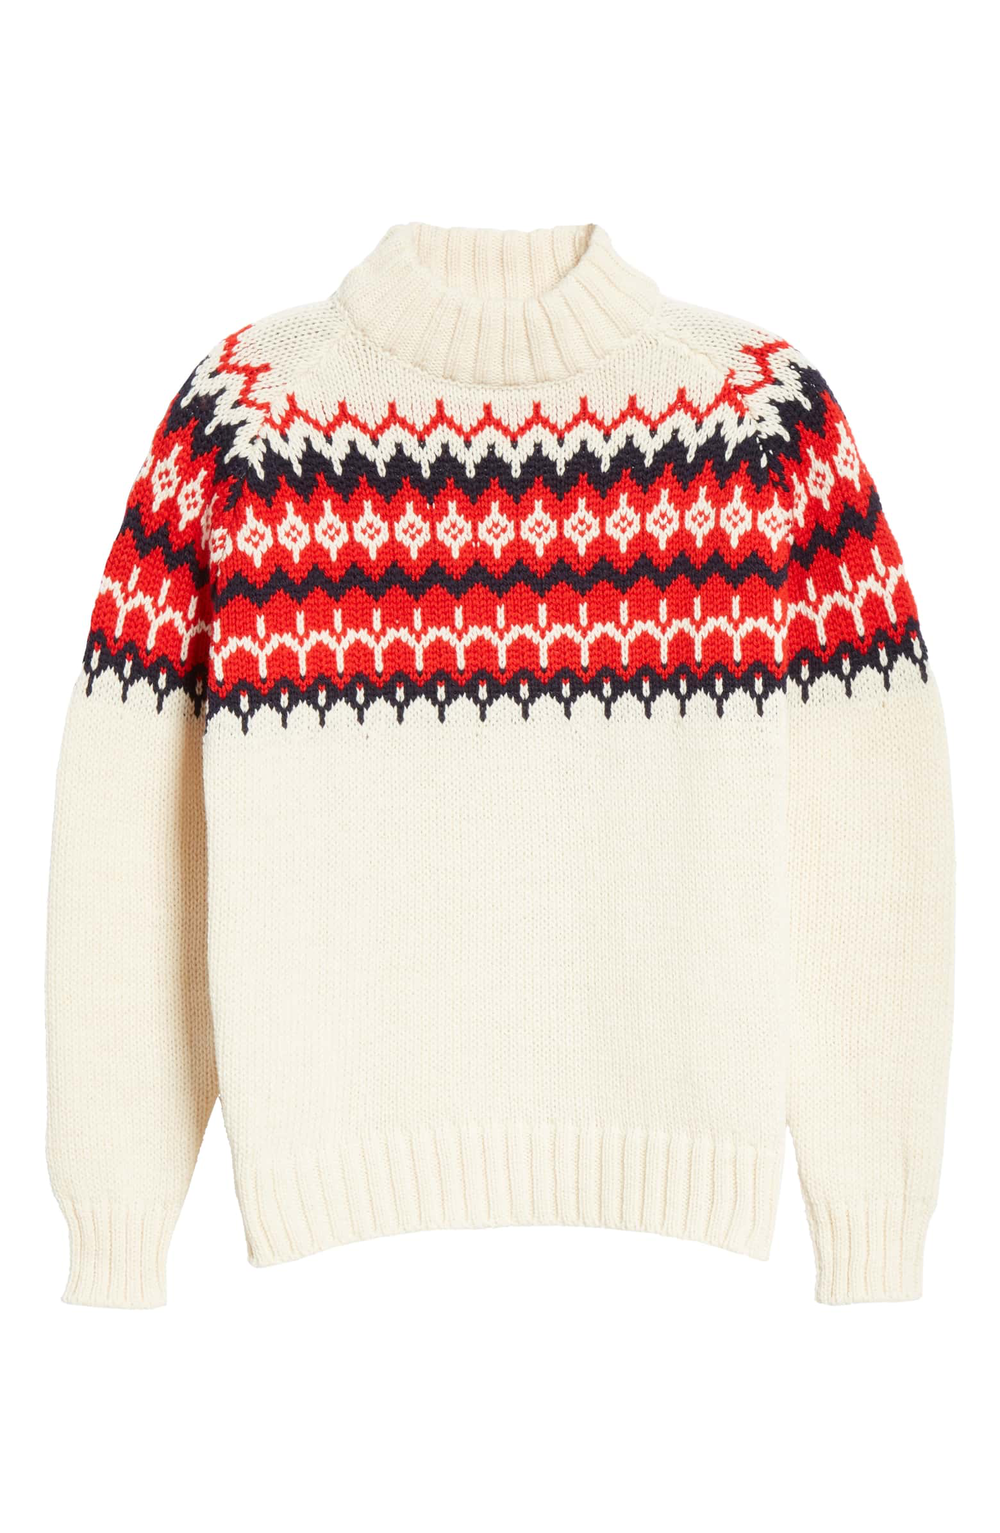 The holiday Sweater - &Daughter Fair Isle Sweater